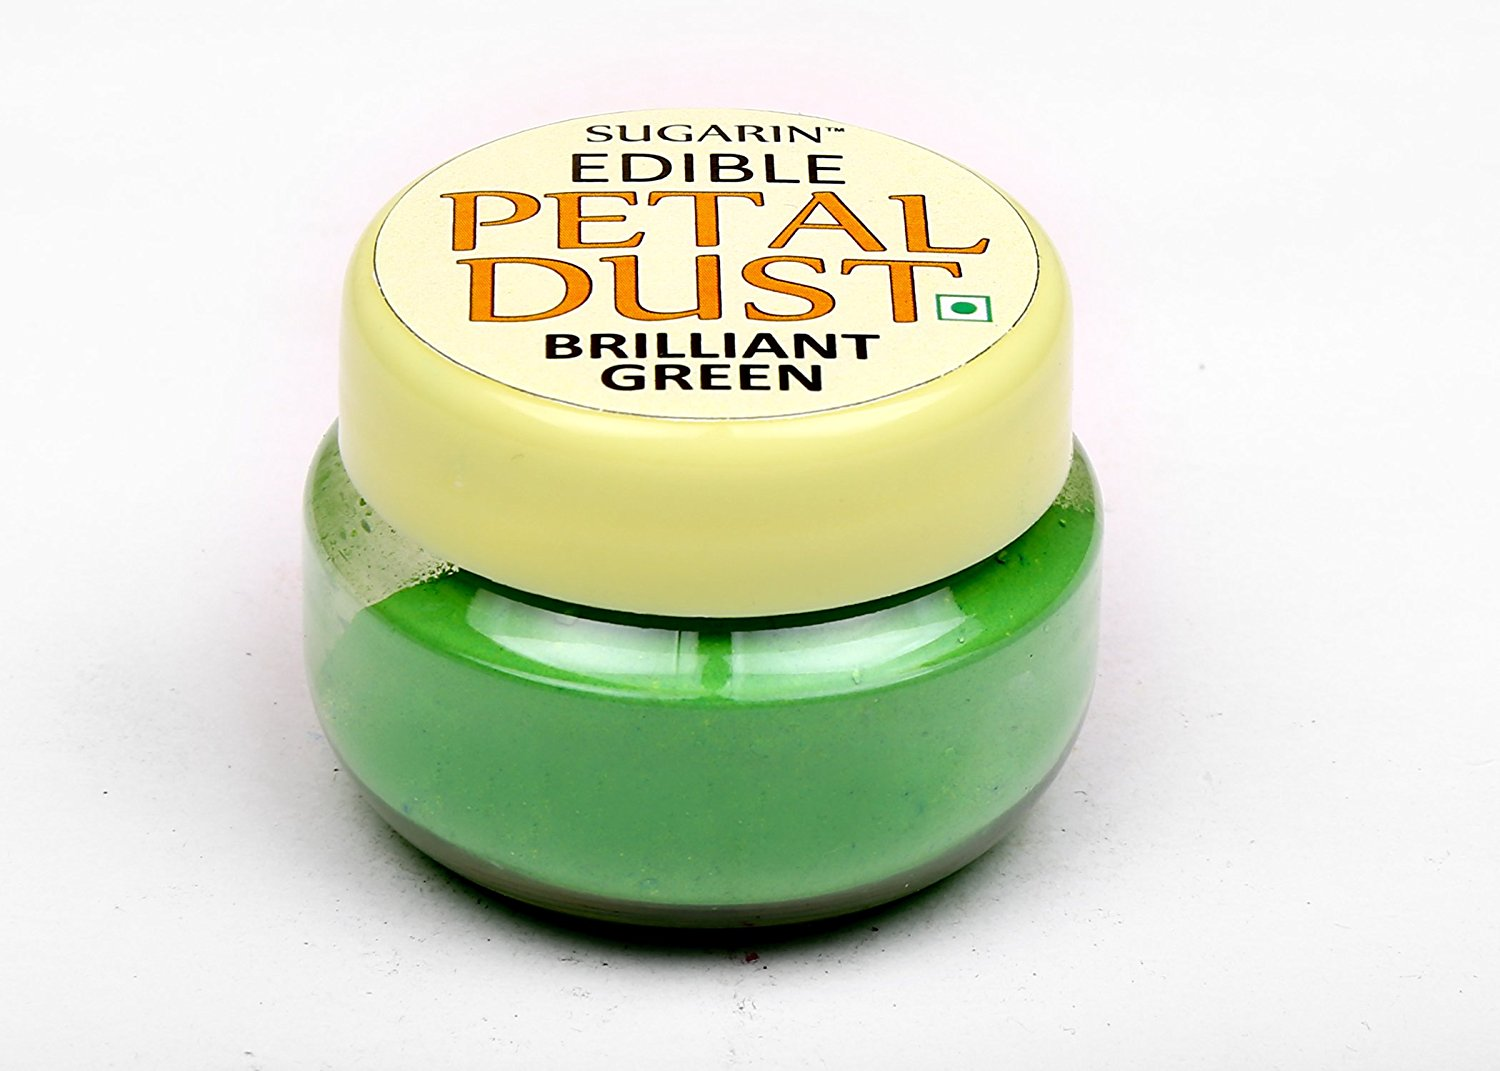 31706 SUGARIN Edible Petal Dust, Brilliant Green, 4.25 gram